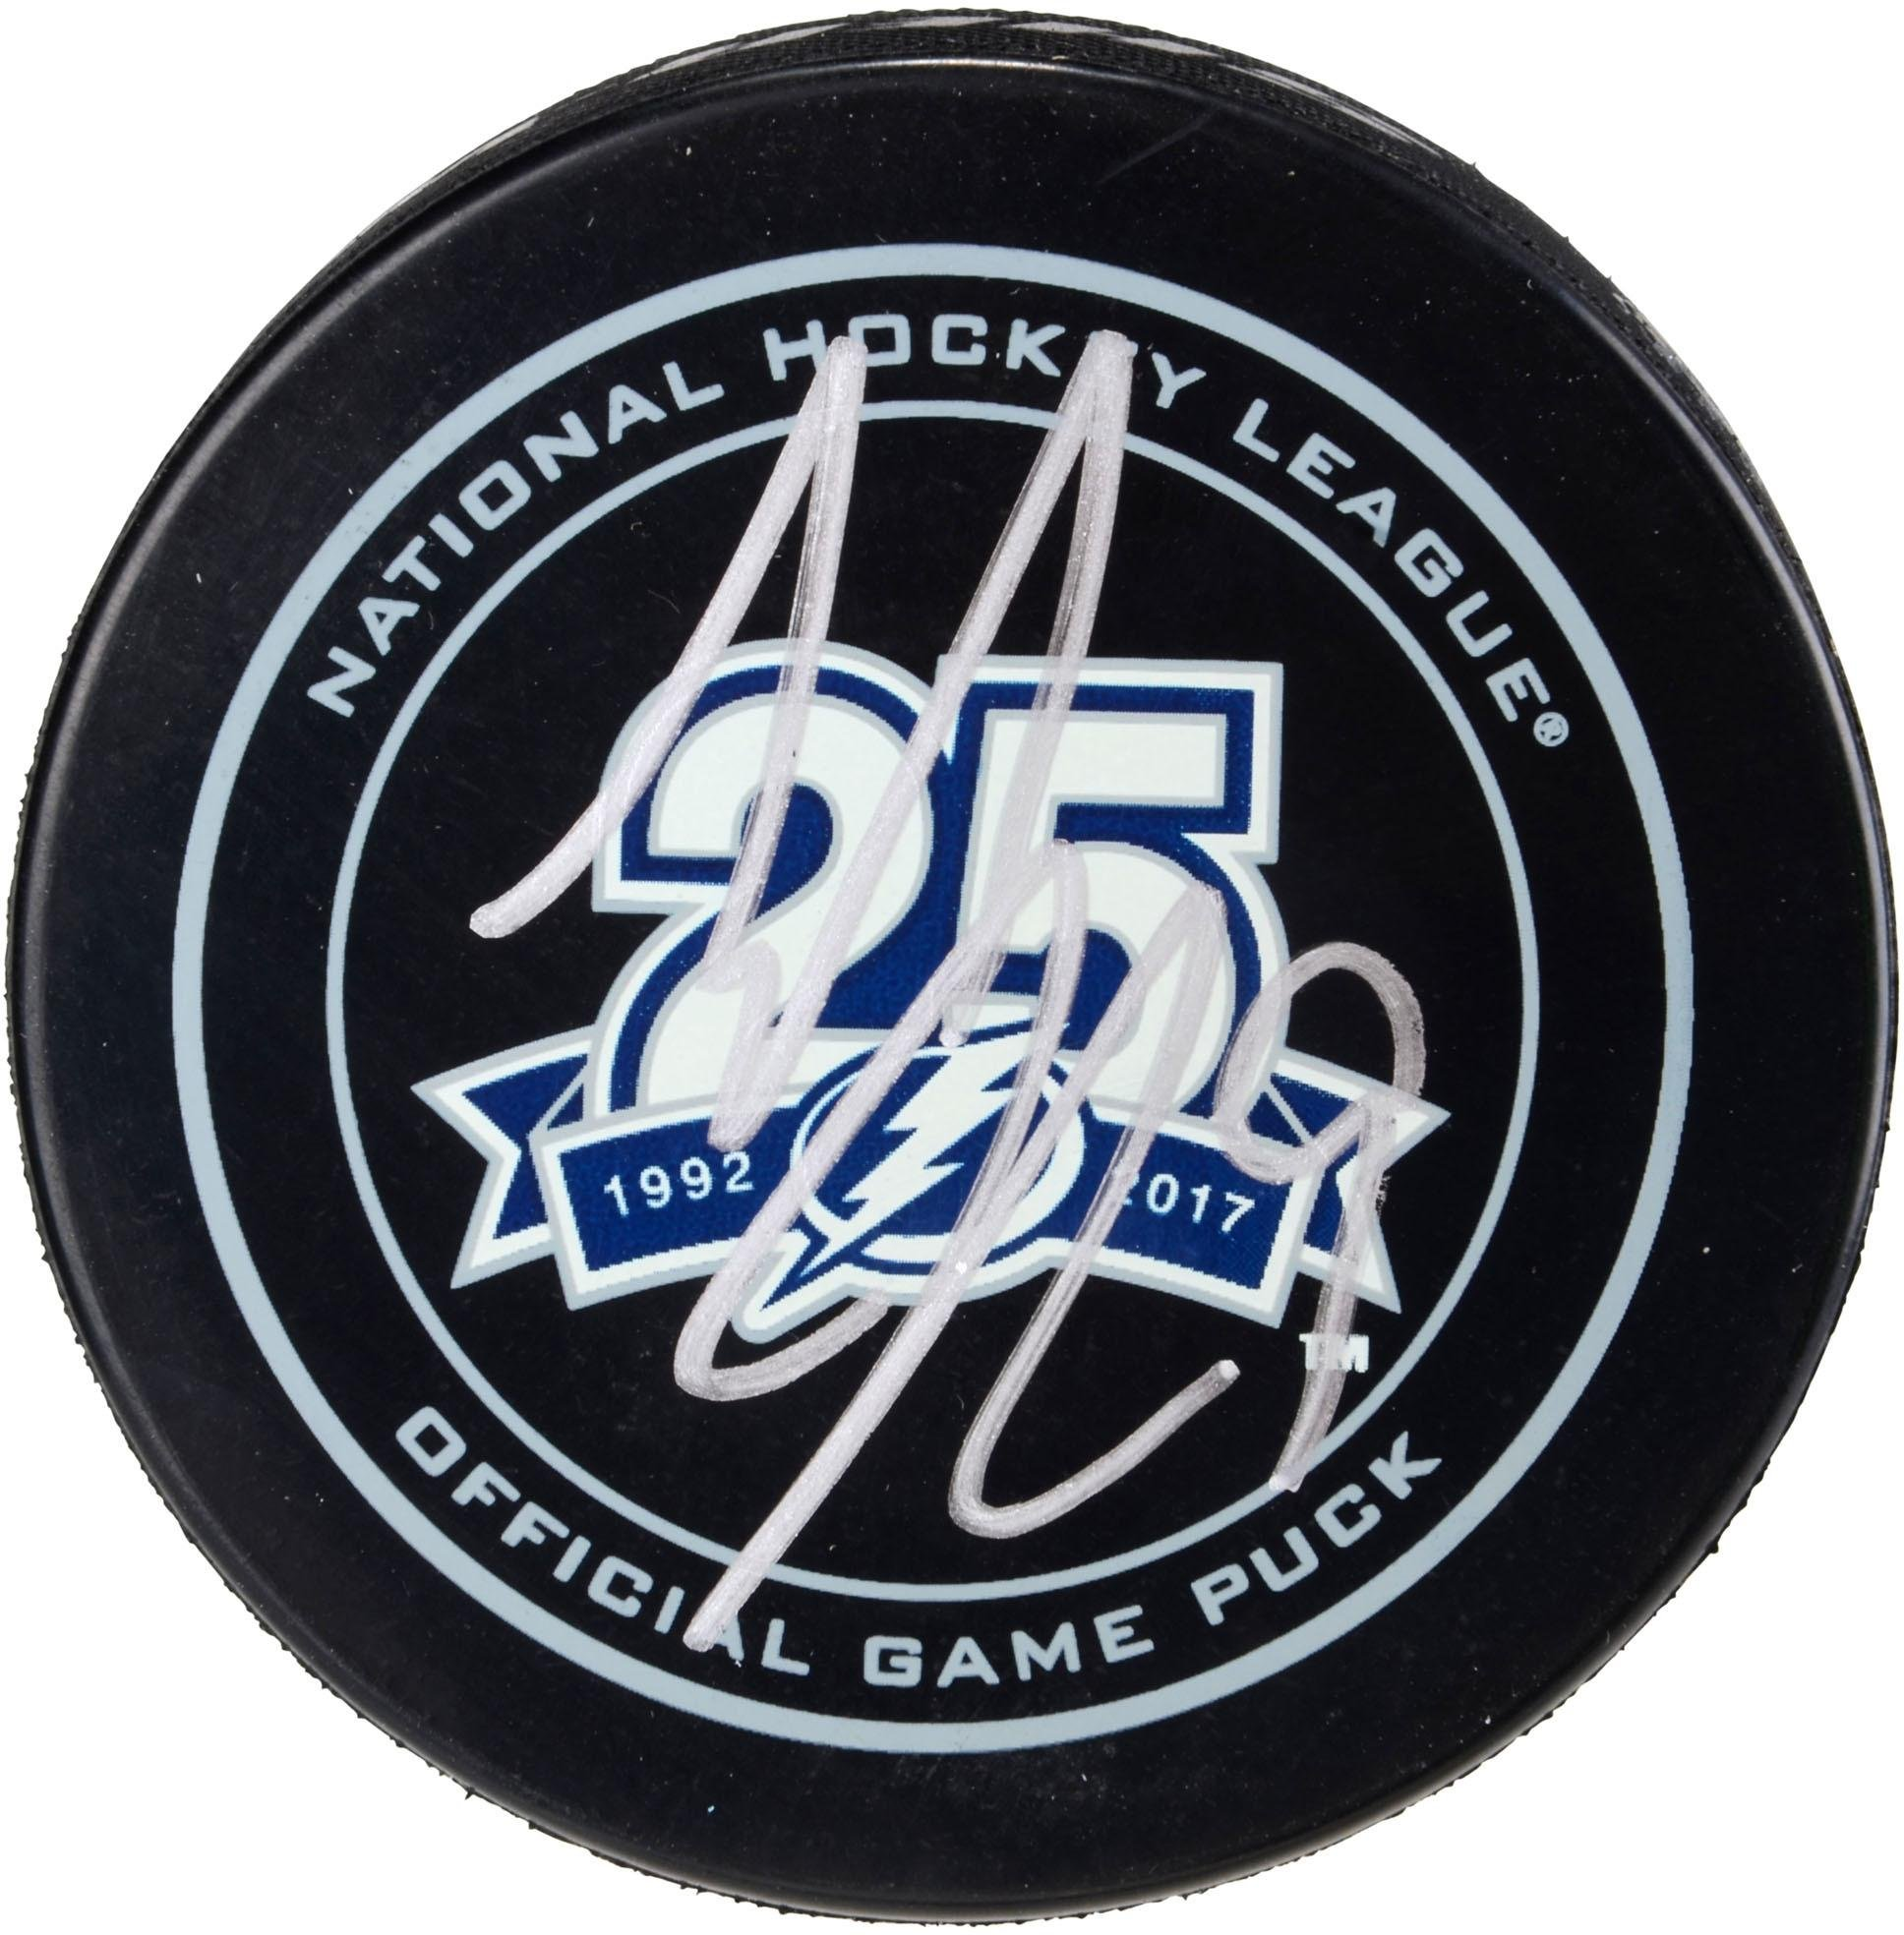 Tyler Johnson Tampa Bay Lightning Autographed 25th Anniversary Season Official Game Puck Fanatics Authentic Certified